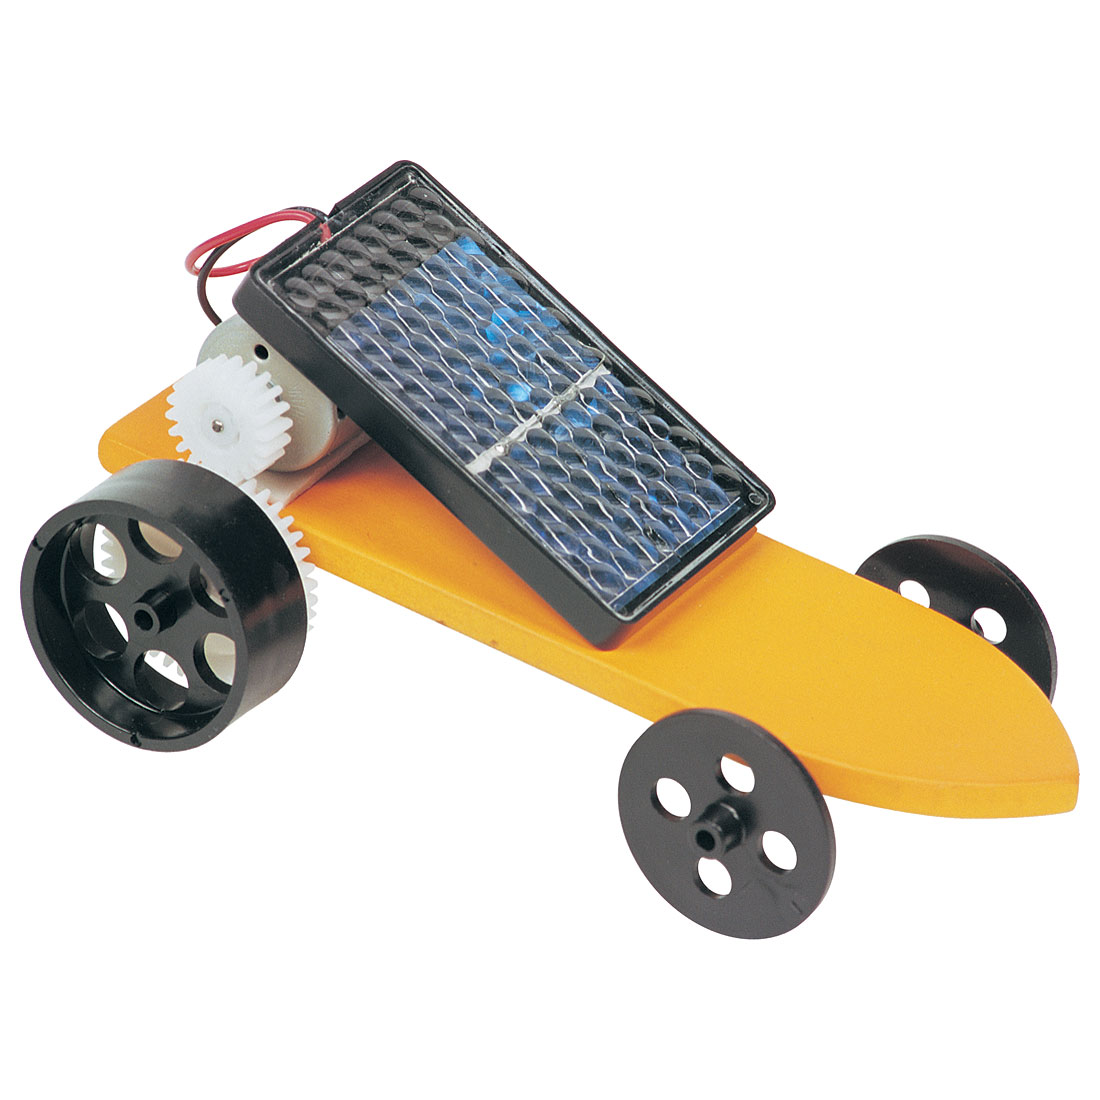 Image result for Zoomlite solar cars